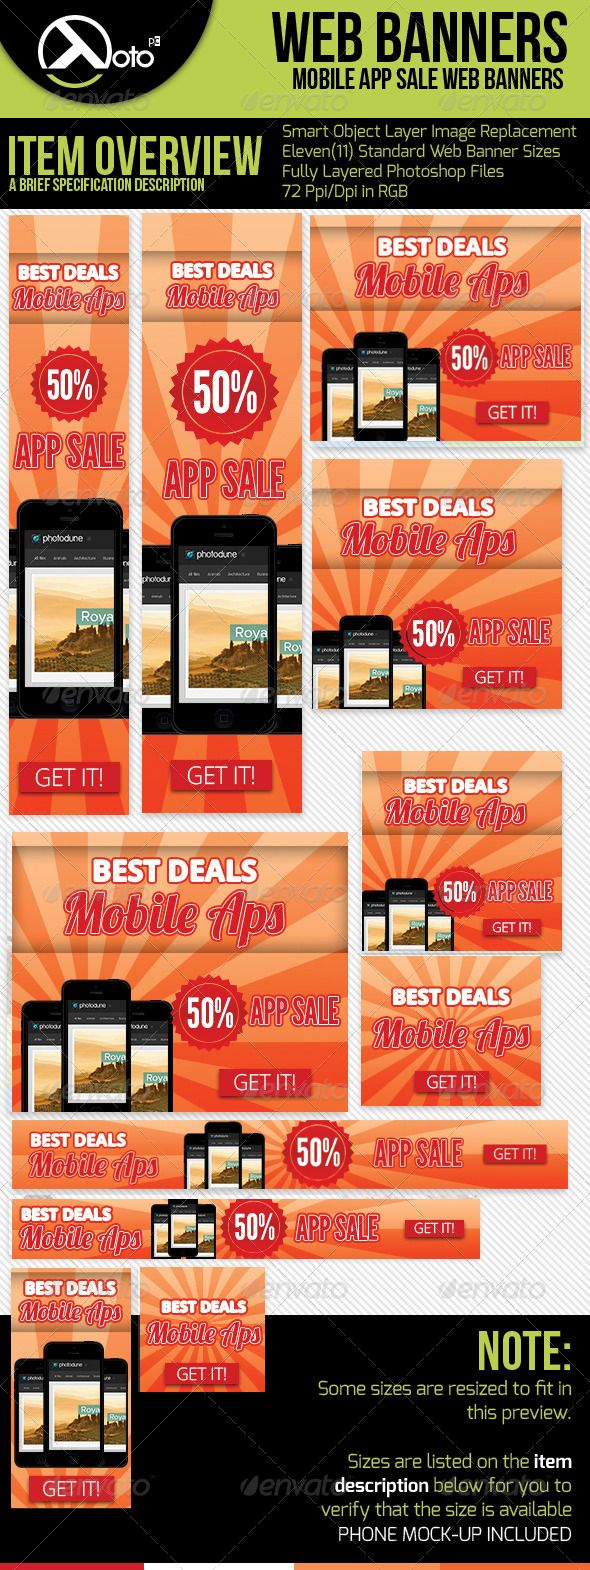 App Sale Web Banners with Phone Mock-up Template PSD | Buy and Download: http://graphicriver.net/item/app-sale-web-banners-with-phone-mockup/6185465?WT.ac=category_thumb&WT.z_author=totopc&ref=ksioks